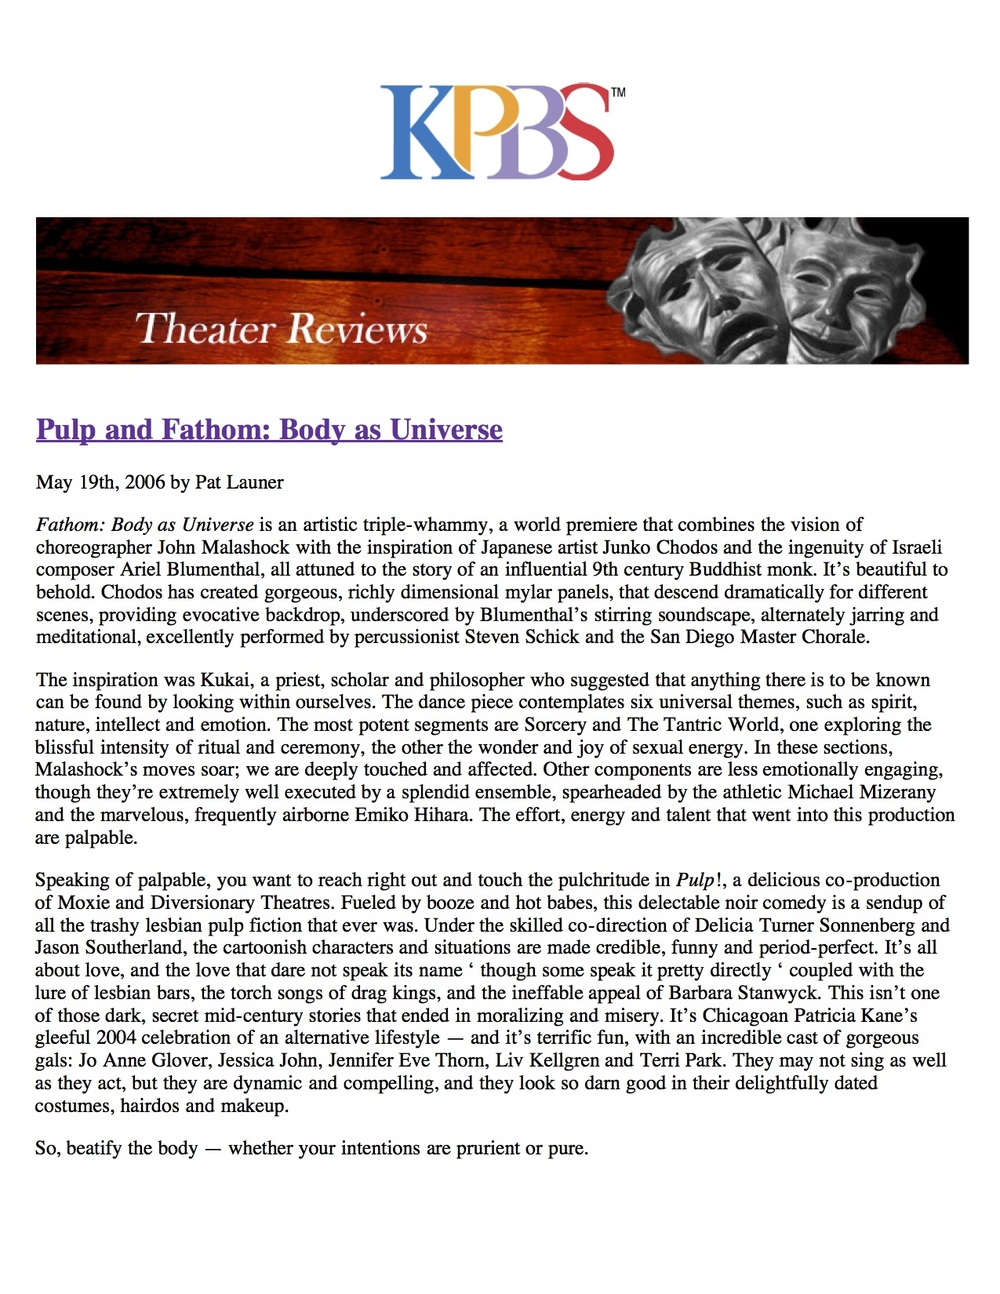 Composer Ariel Blumenthal Review of Fathom: The Body as a Universe KPBS